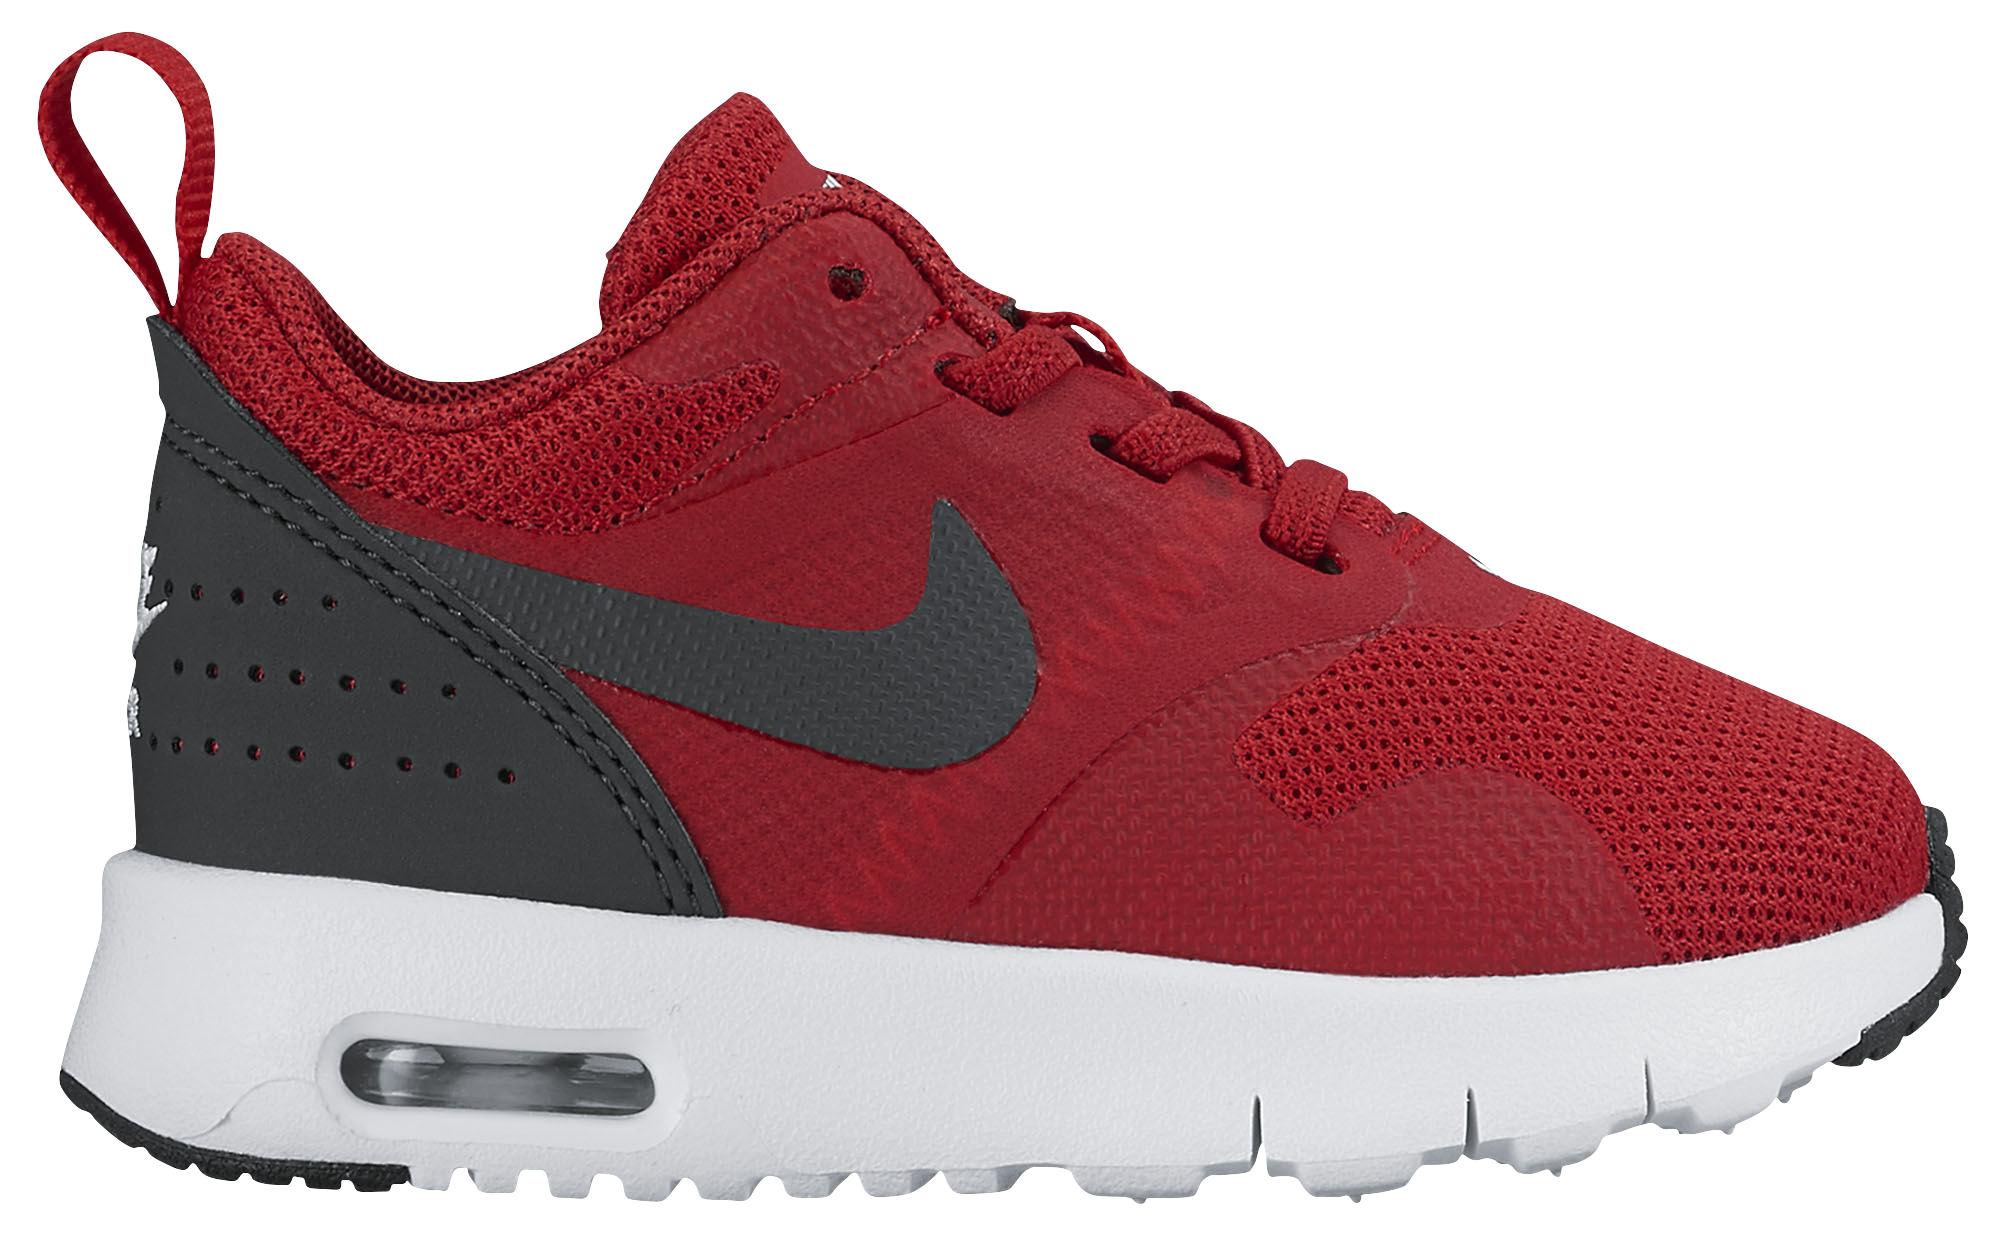 air max tavas footlocker red timbs